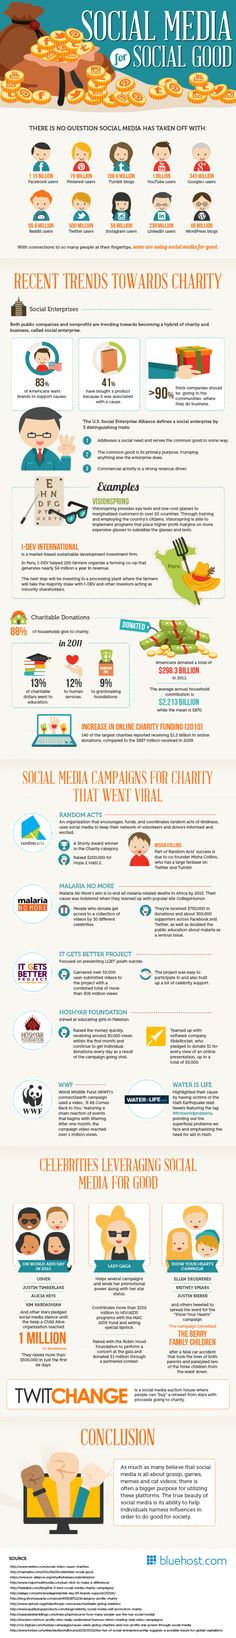 A great infographic on how social media is leading to increases in social good! We know that part of this includes more people talking about and registering as organ, eye and tissue donors. #DonateLIfe